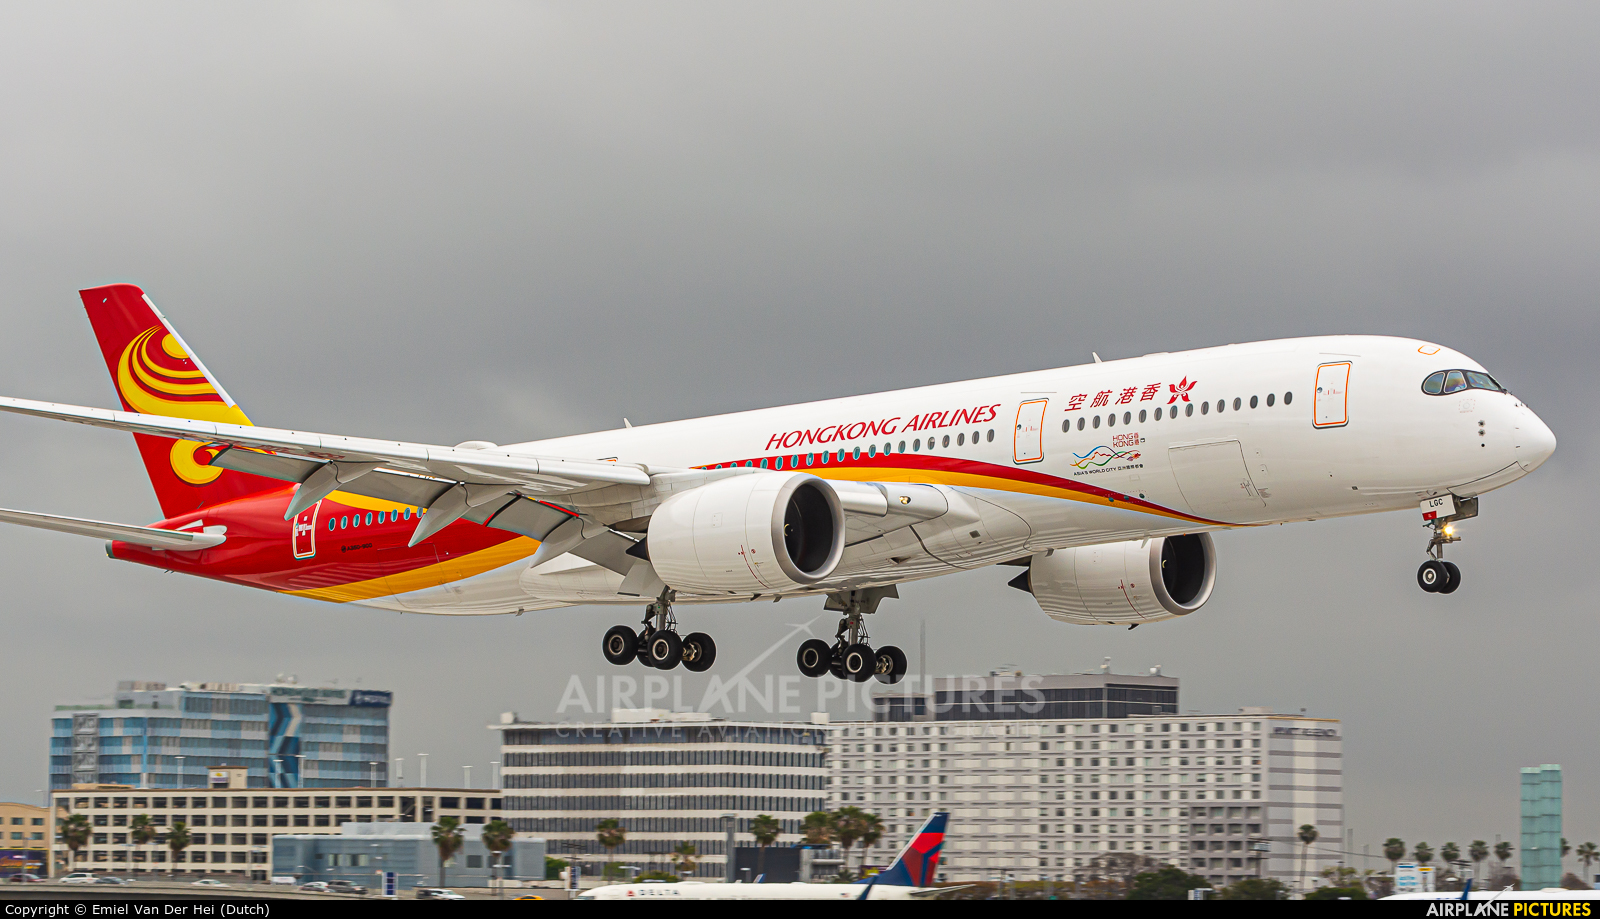 Hong Kong Airlines B-LGC aircraft at Los Angeles Intl